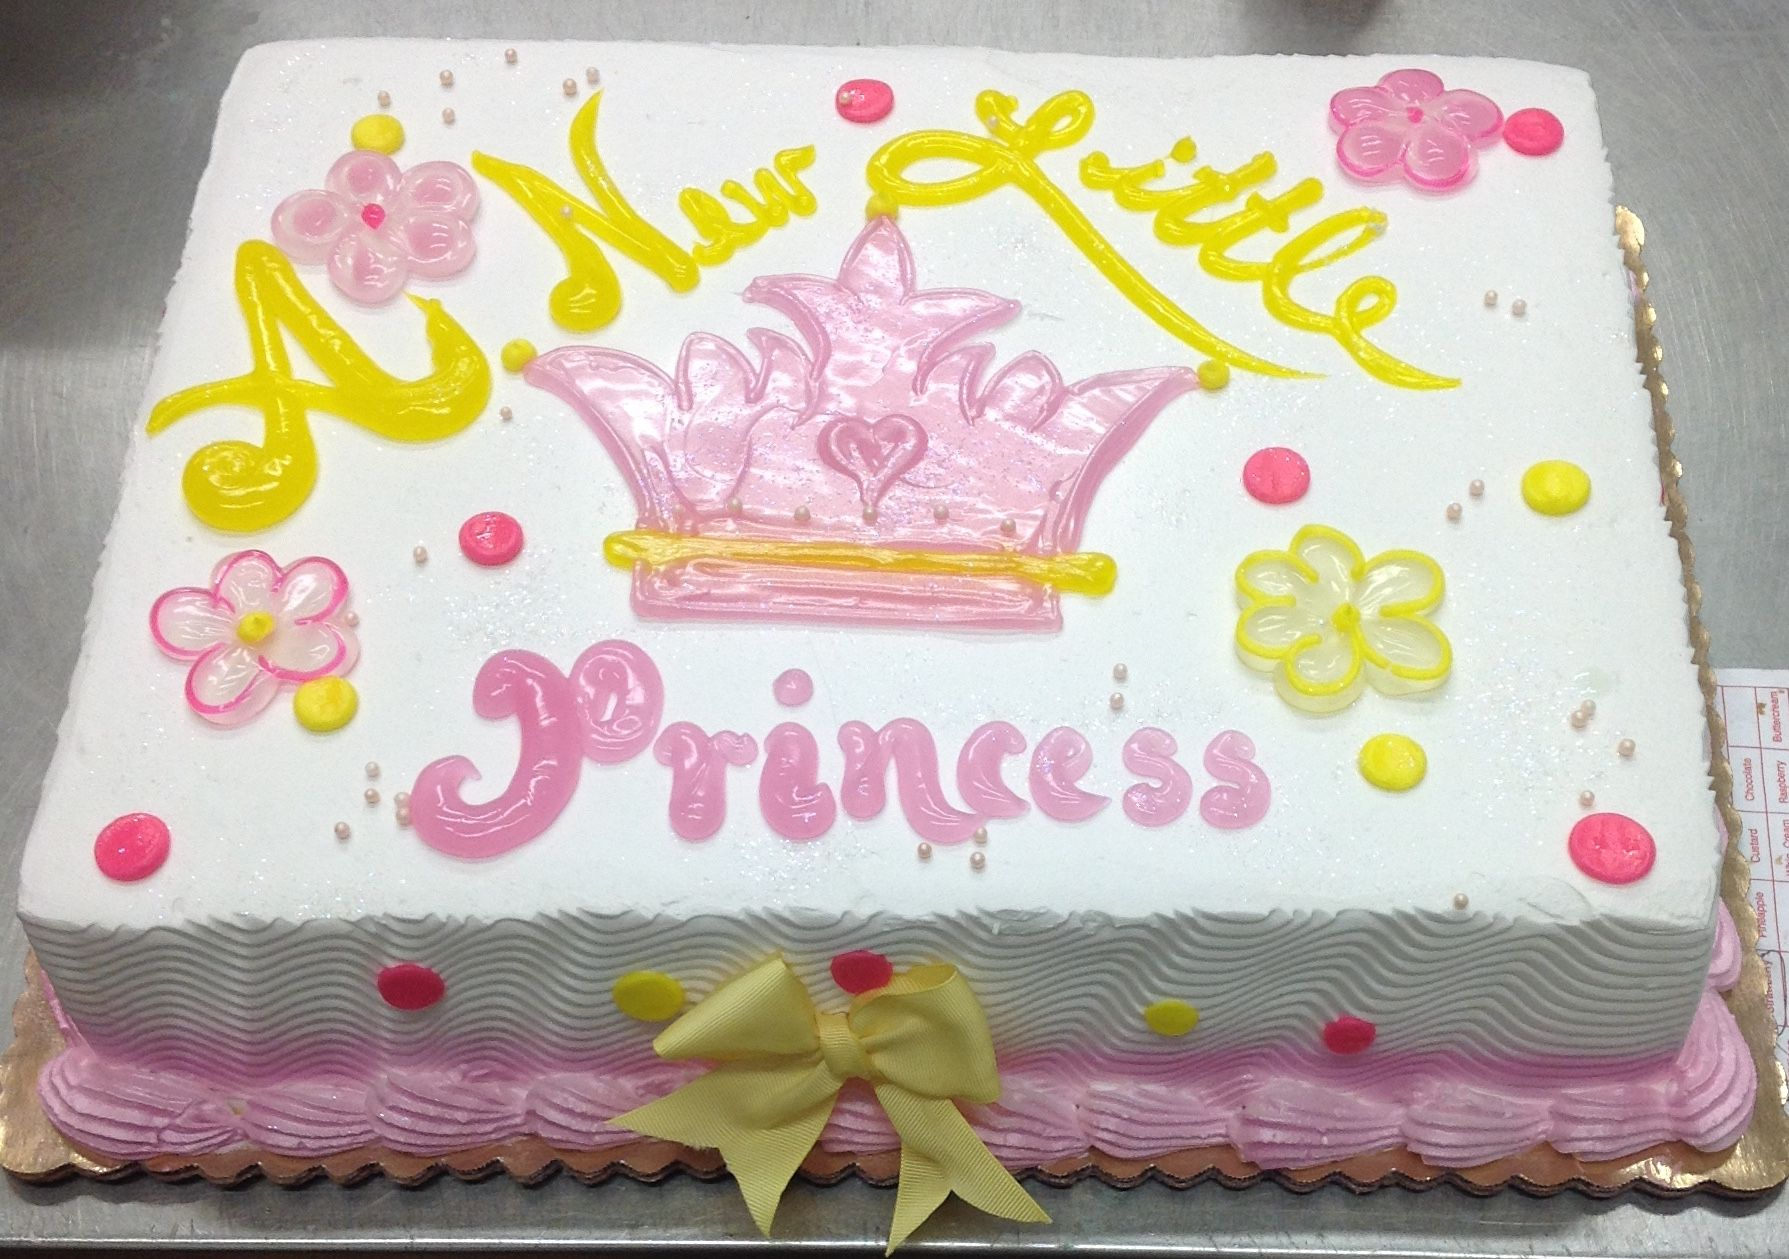 Calumet Bakery A new little princess baby shower cake